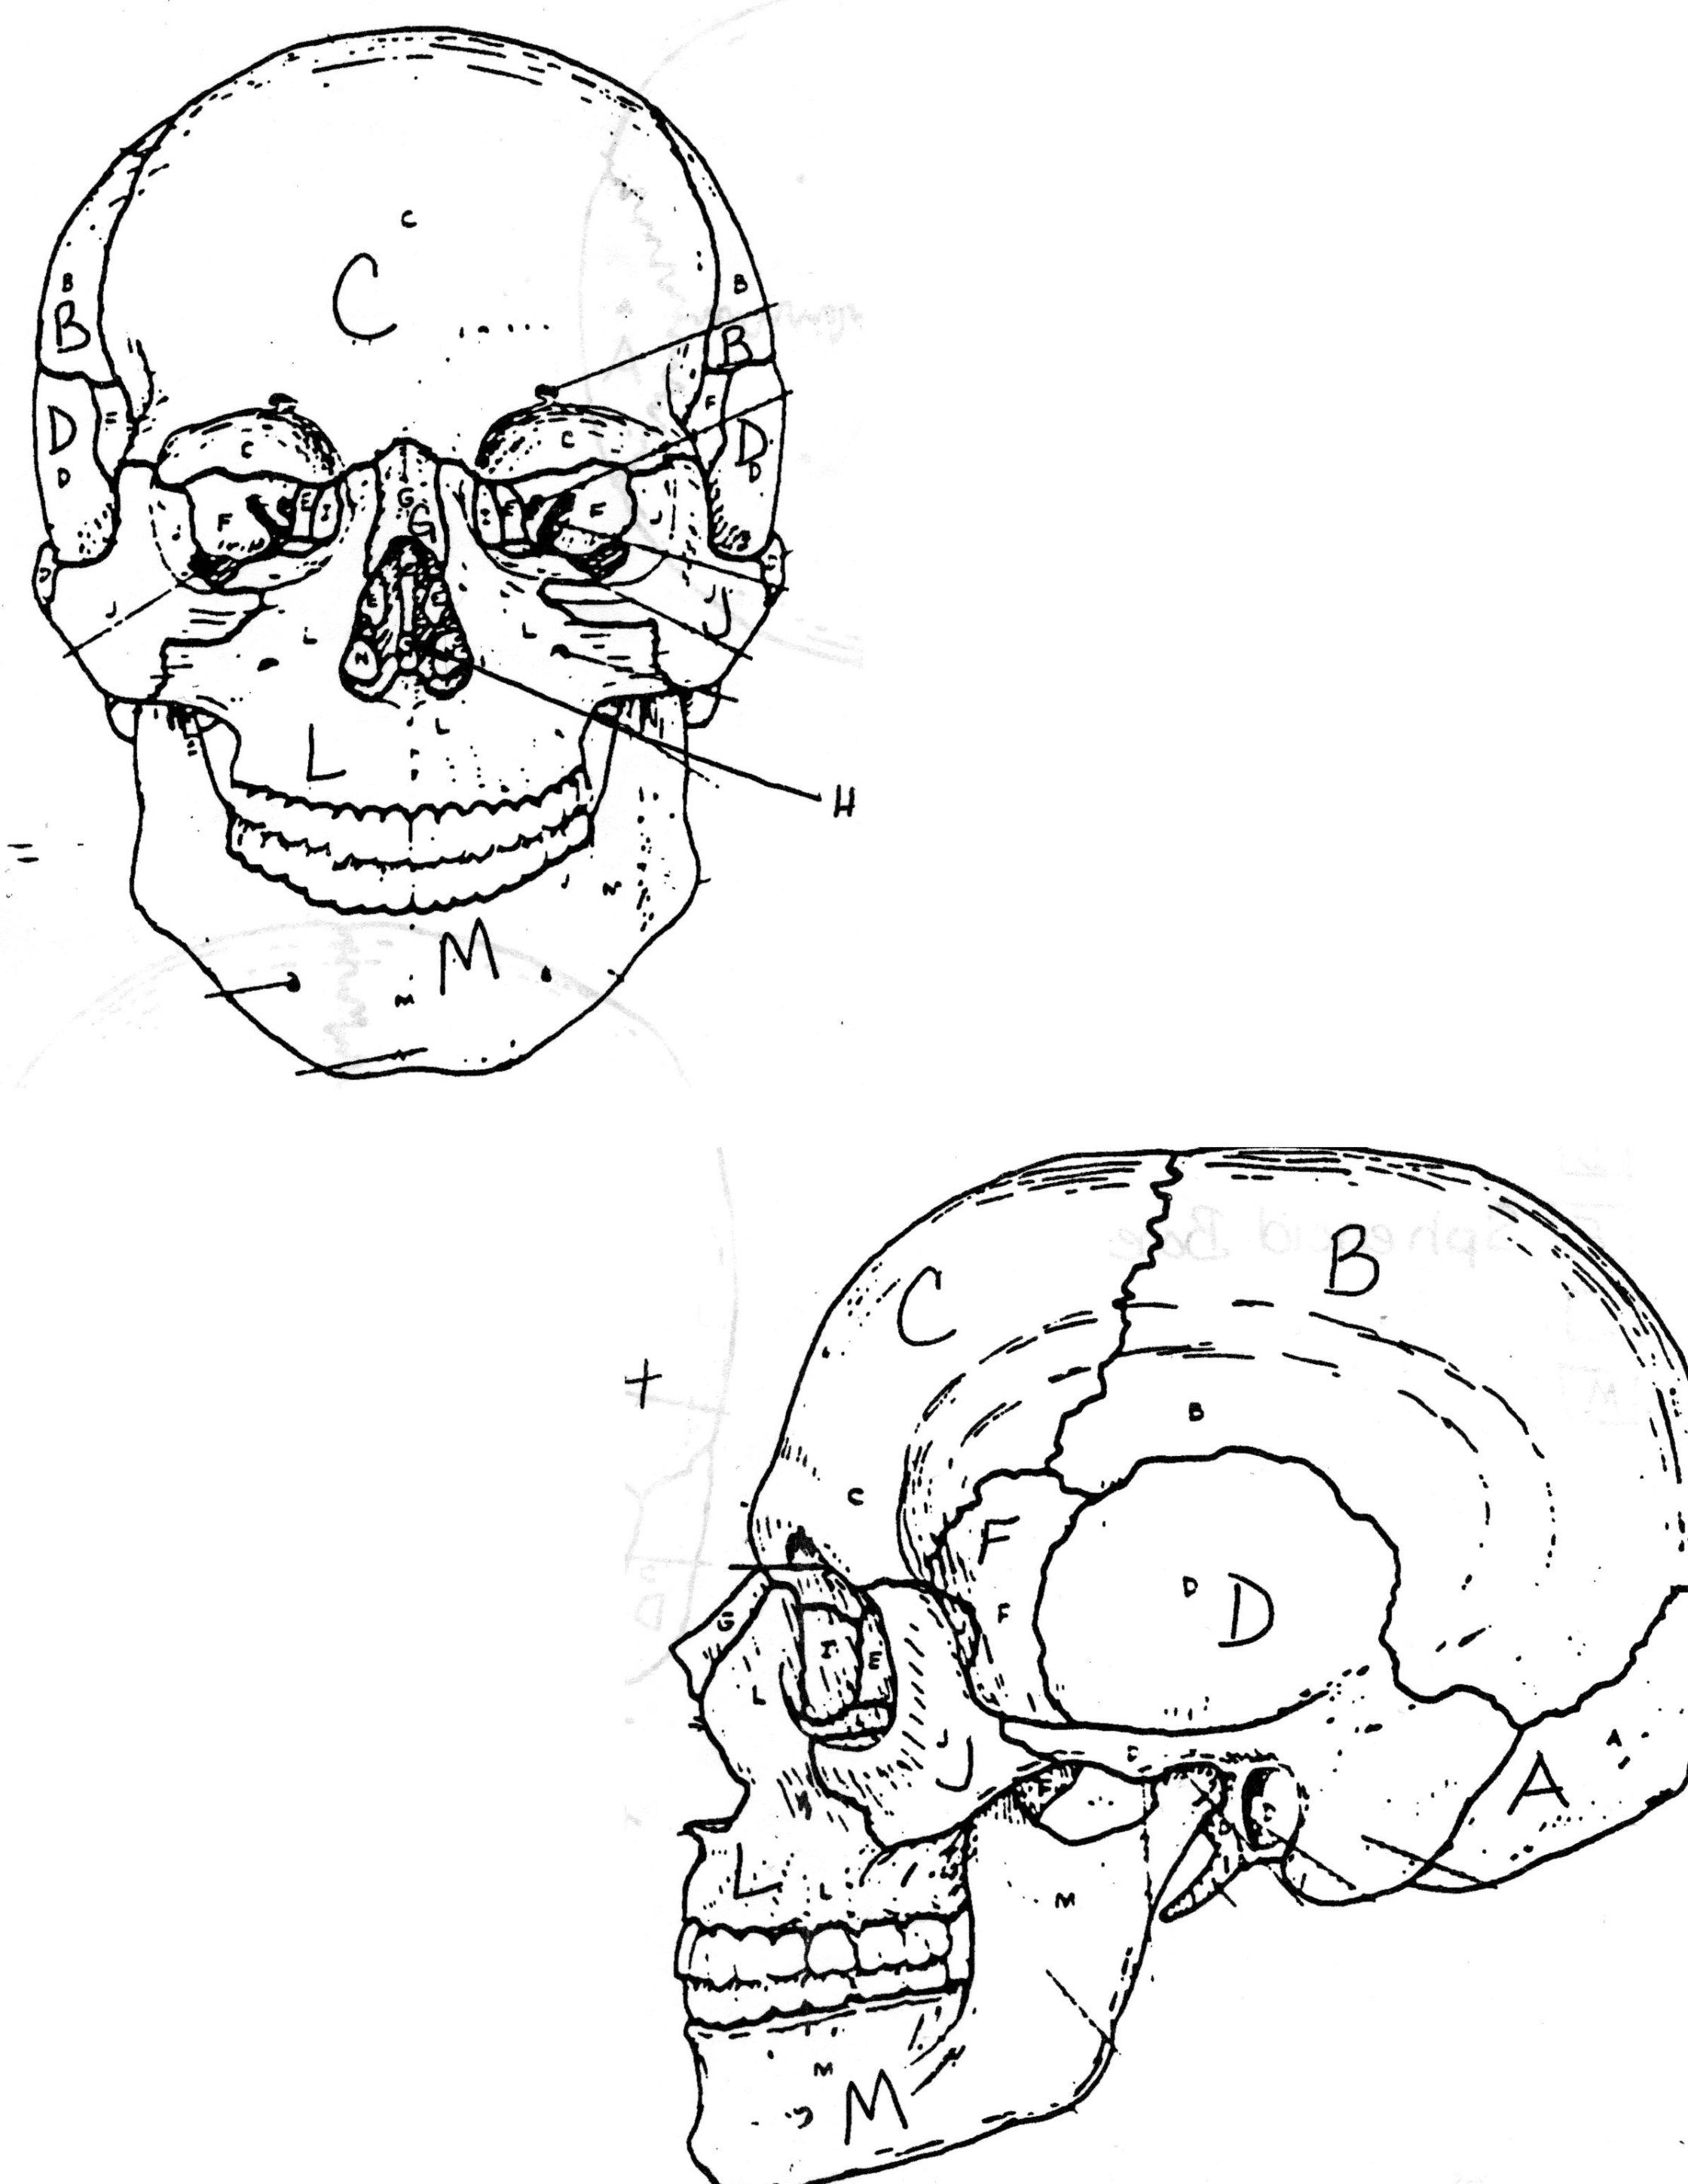 Anatomy Coloring Pages Skull Human Anatomy Coloring Pages Coloringsuite Albanysinsanity Com Skull Coloring Pages Coloring Books Anatomy Coloring Book